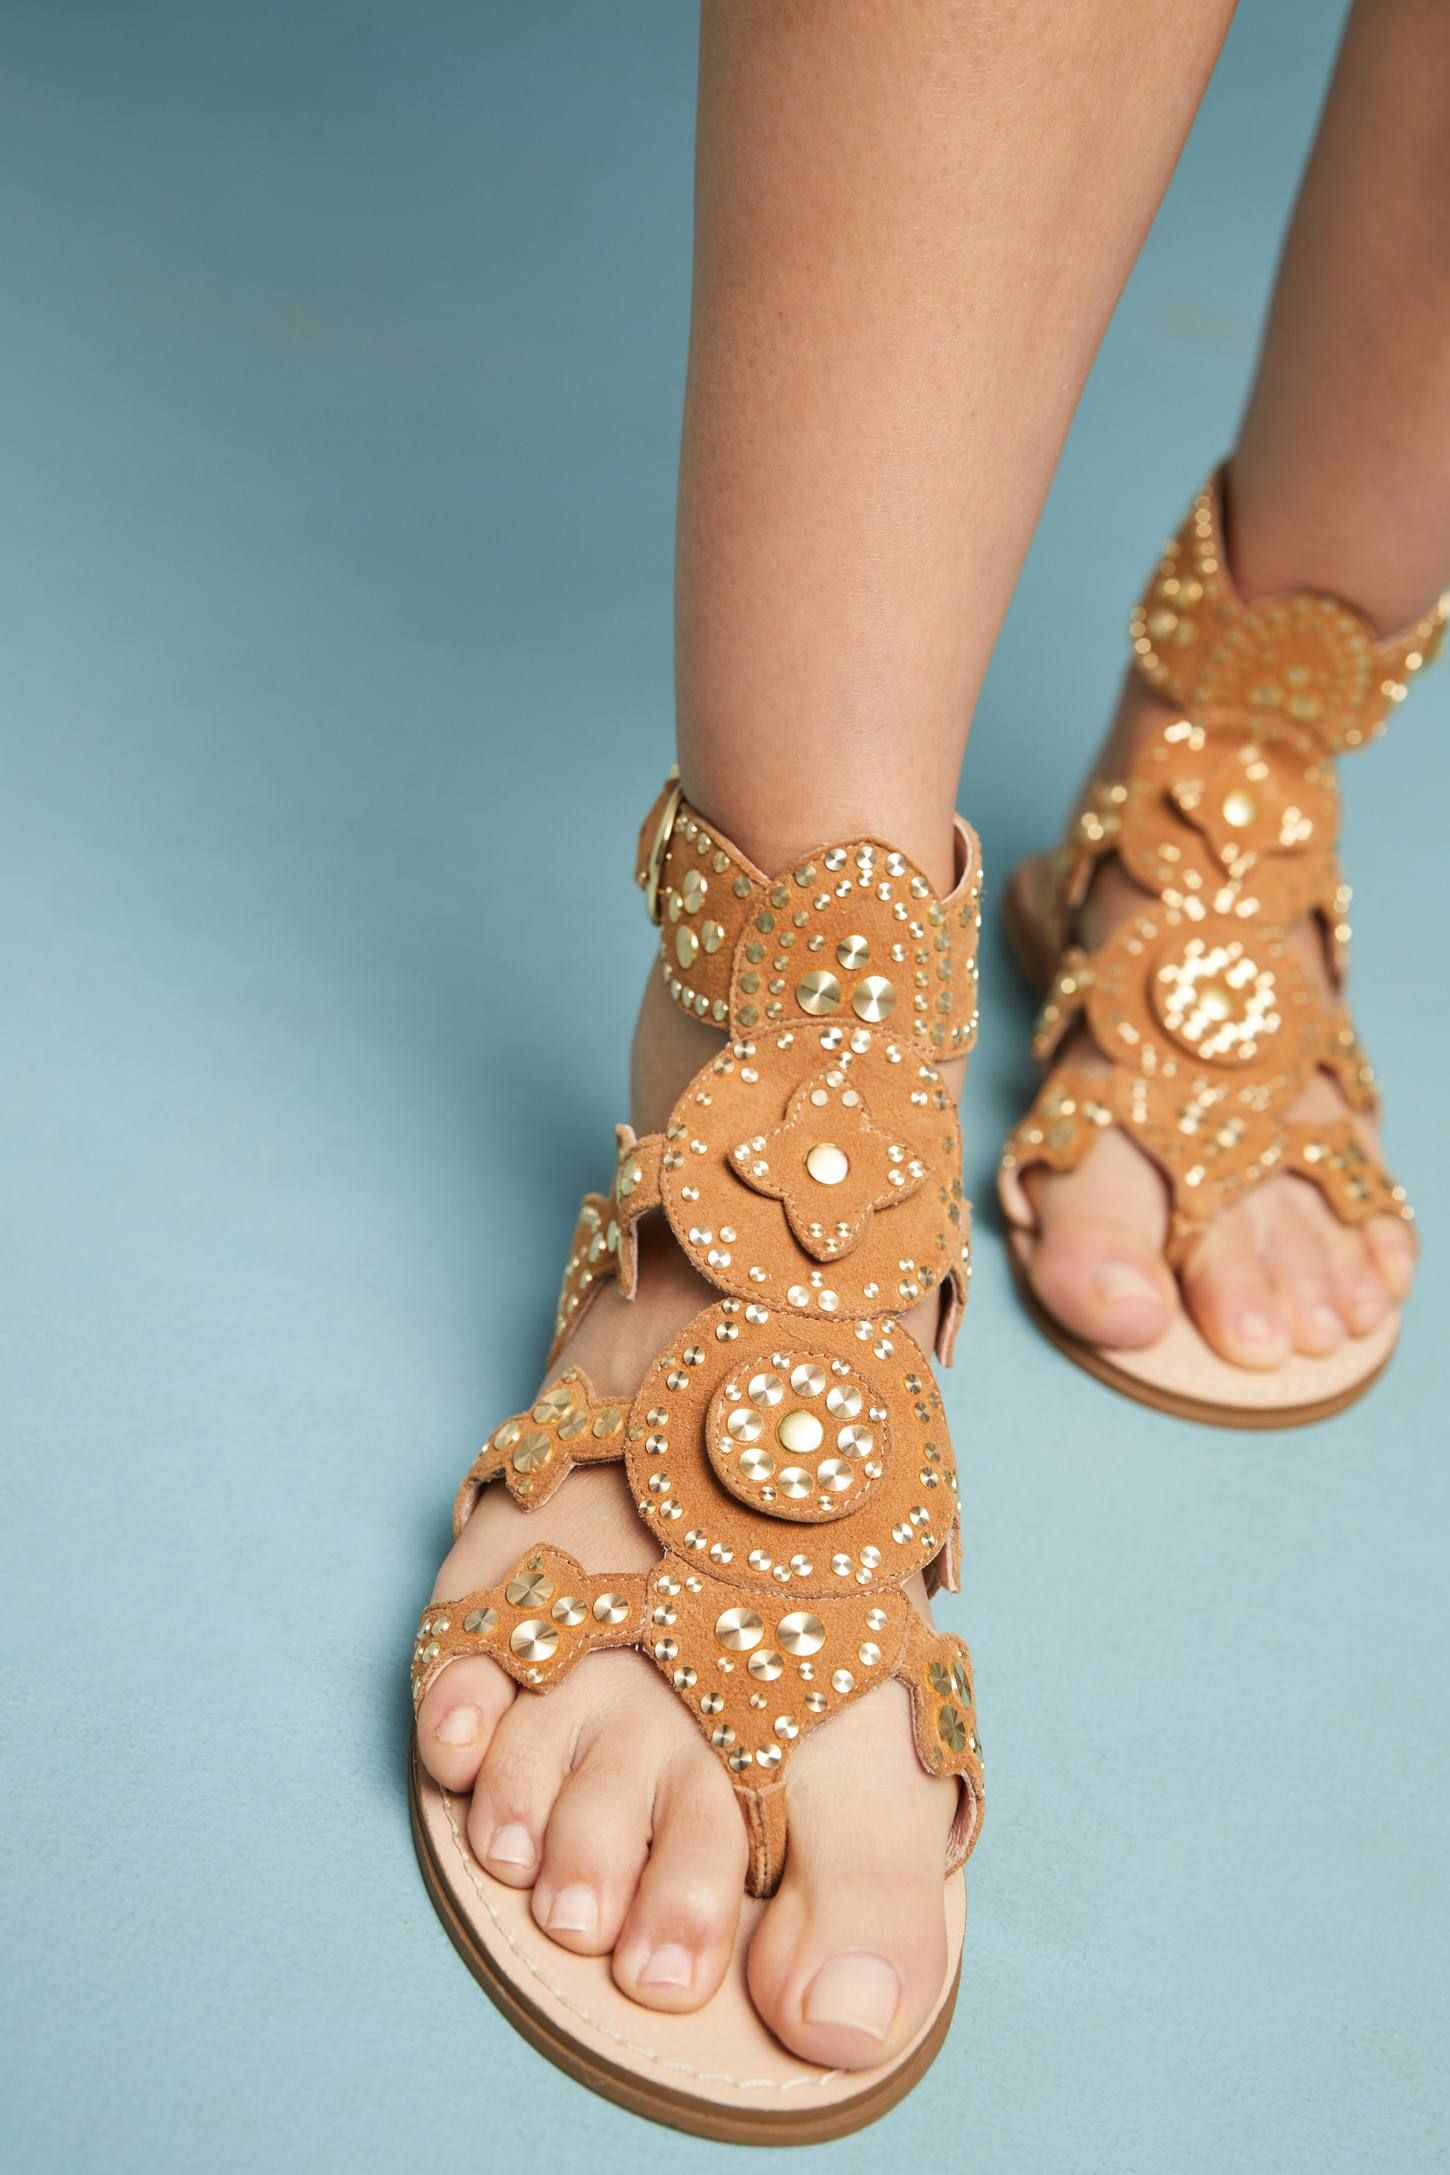 c2baaaffd0d Cecelia New York Bubbly Gladiator Sandals